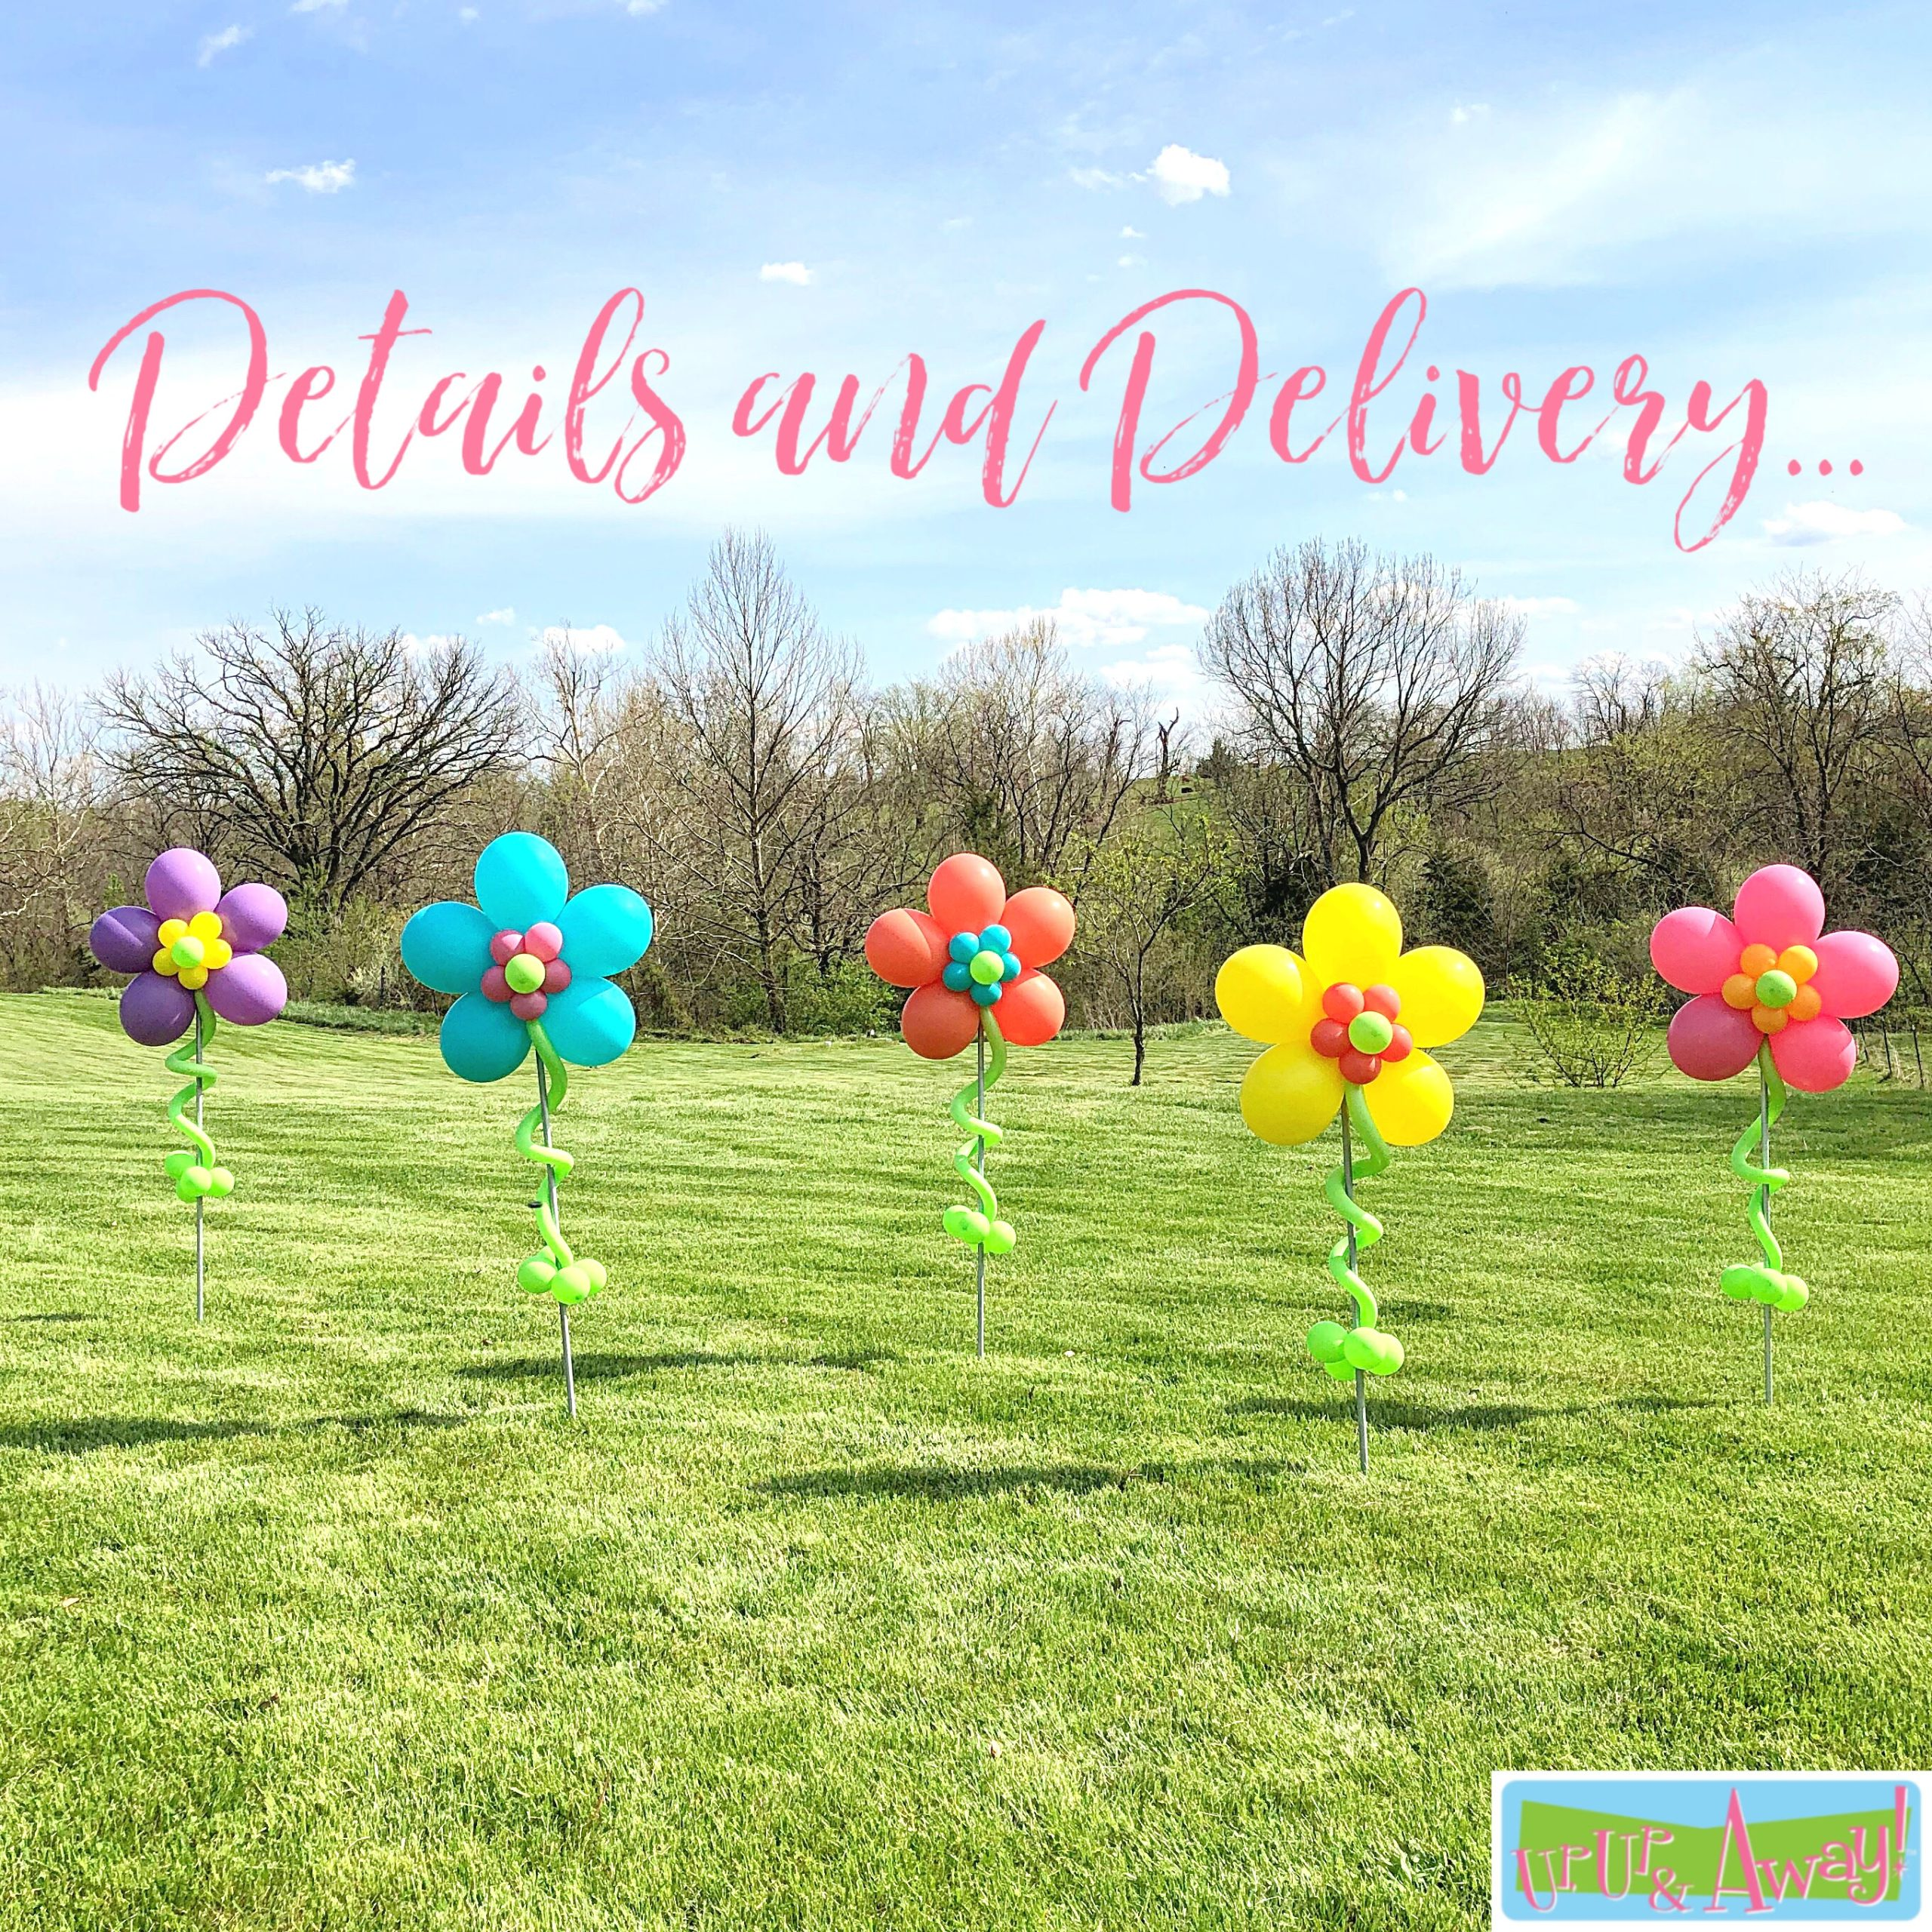 Details and Delivery | Up, Up & Away! Balloons